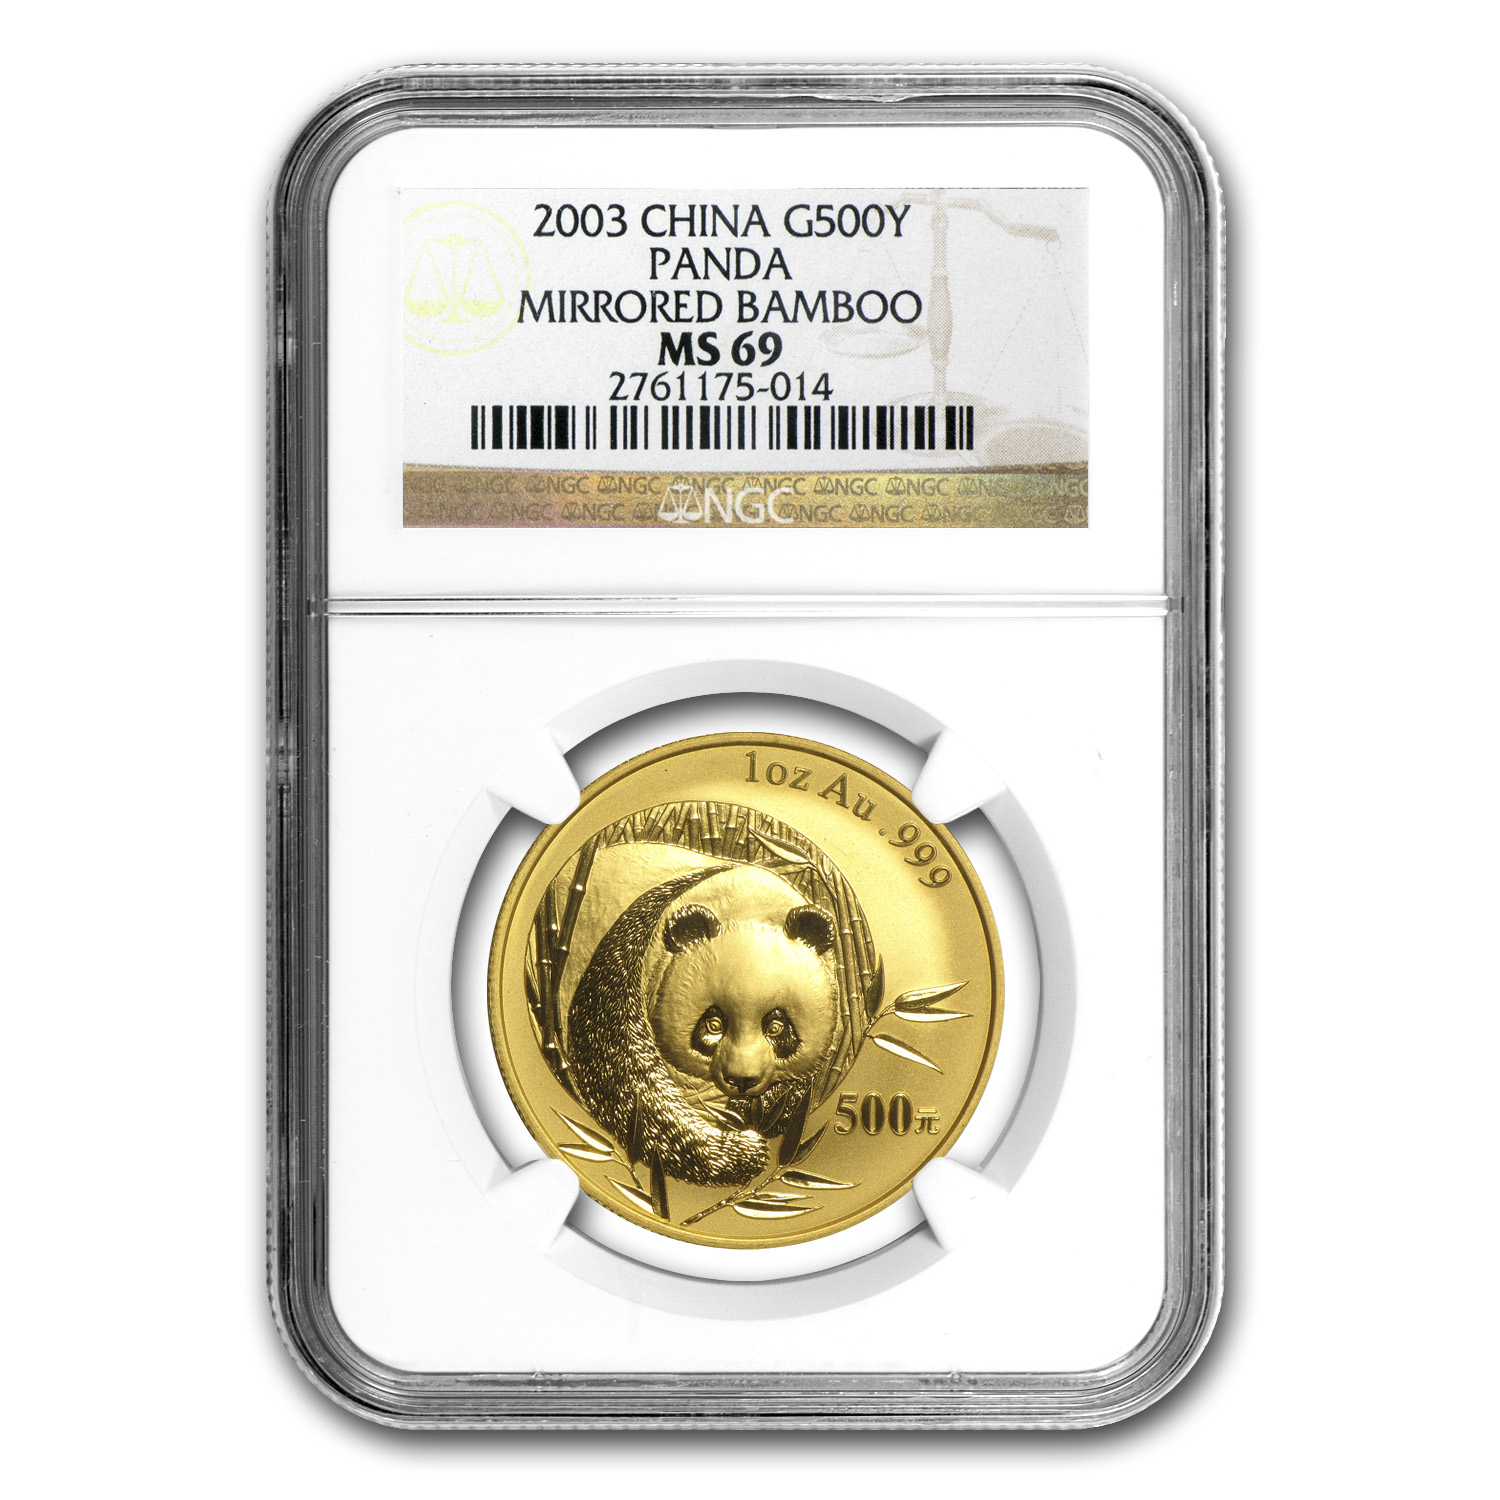 2003 China 1 oz Gold Panda Mirrored Bamboo MS-69 NGC